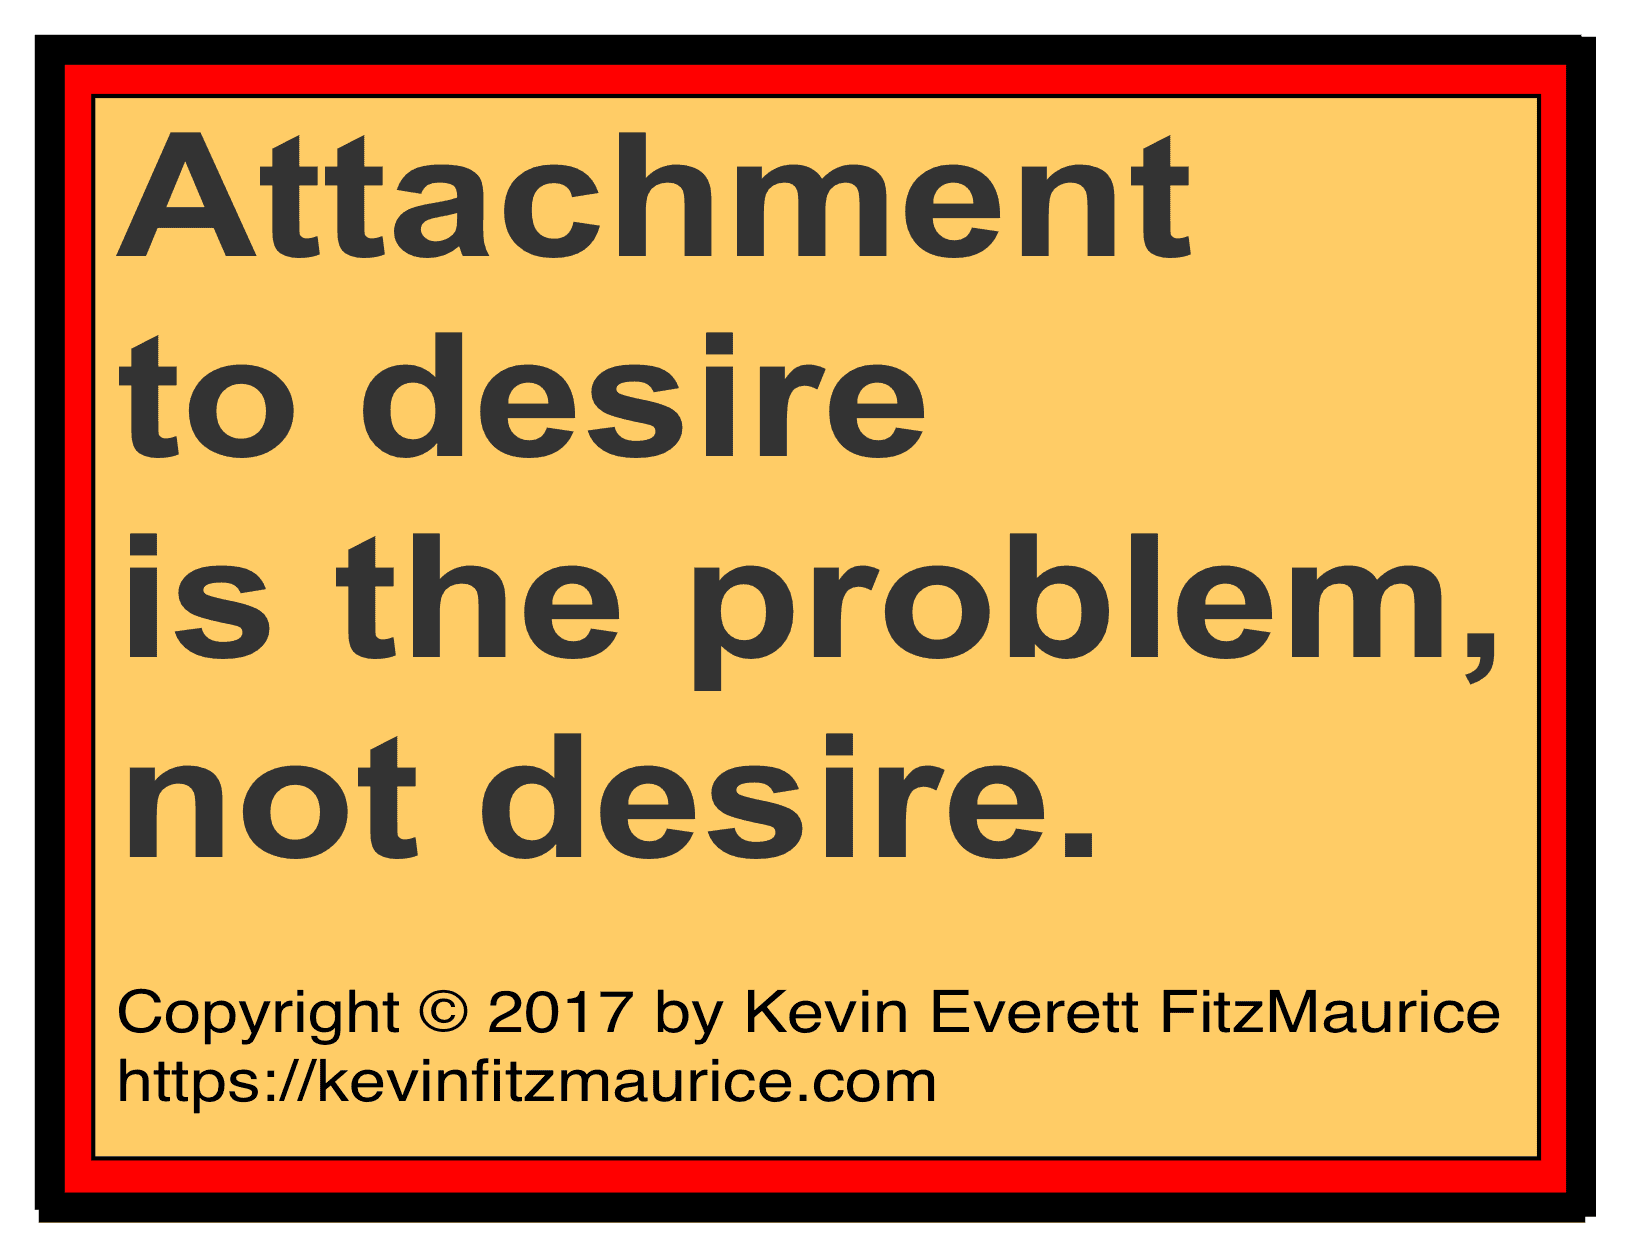 Attachment to desire is the problem